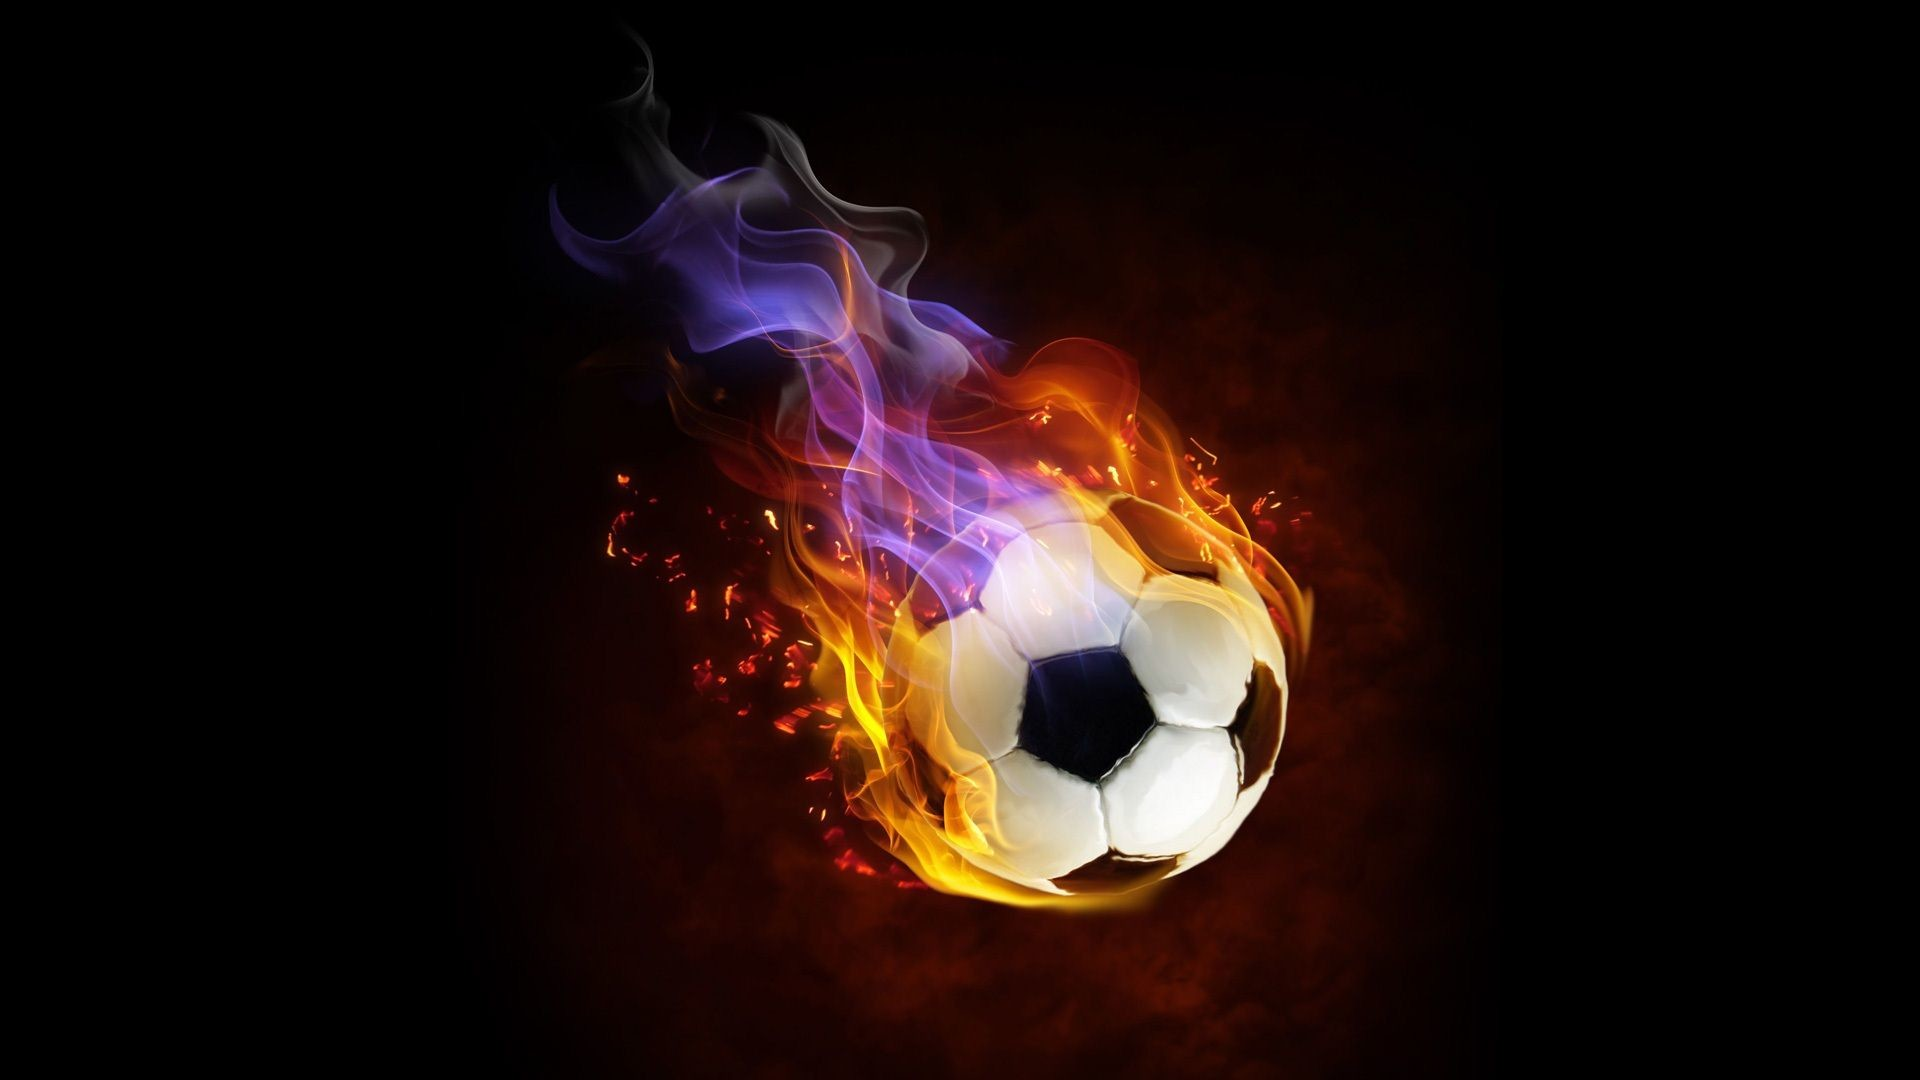 Awesome 3D Abstract Football HD Wallpaper Free Download at  Hdwallpapersz.net   Exclusive Single Track 2017   Pinterest   Wallpaper  free download